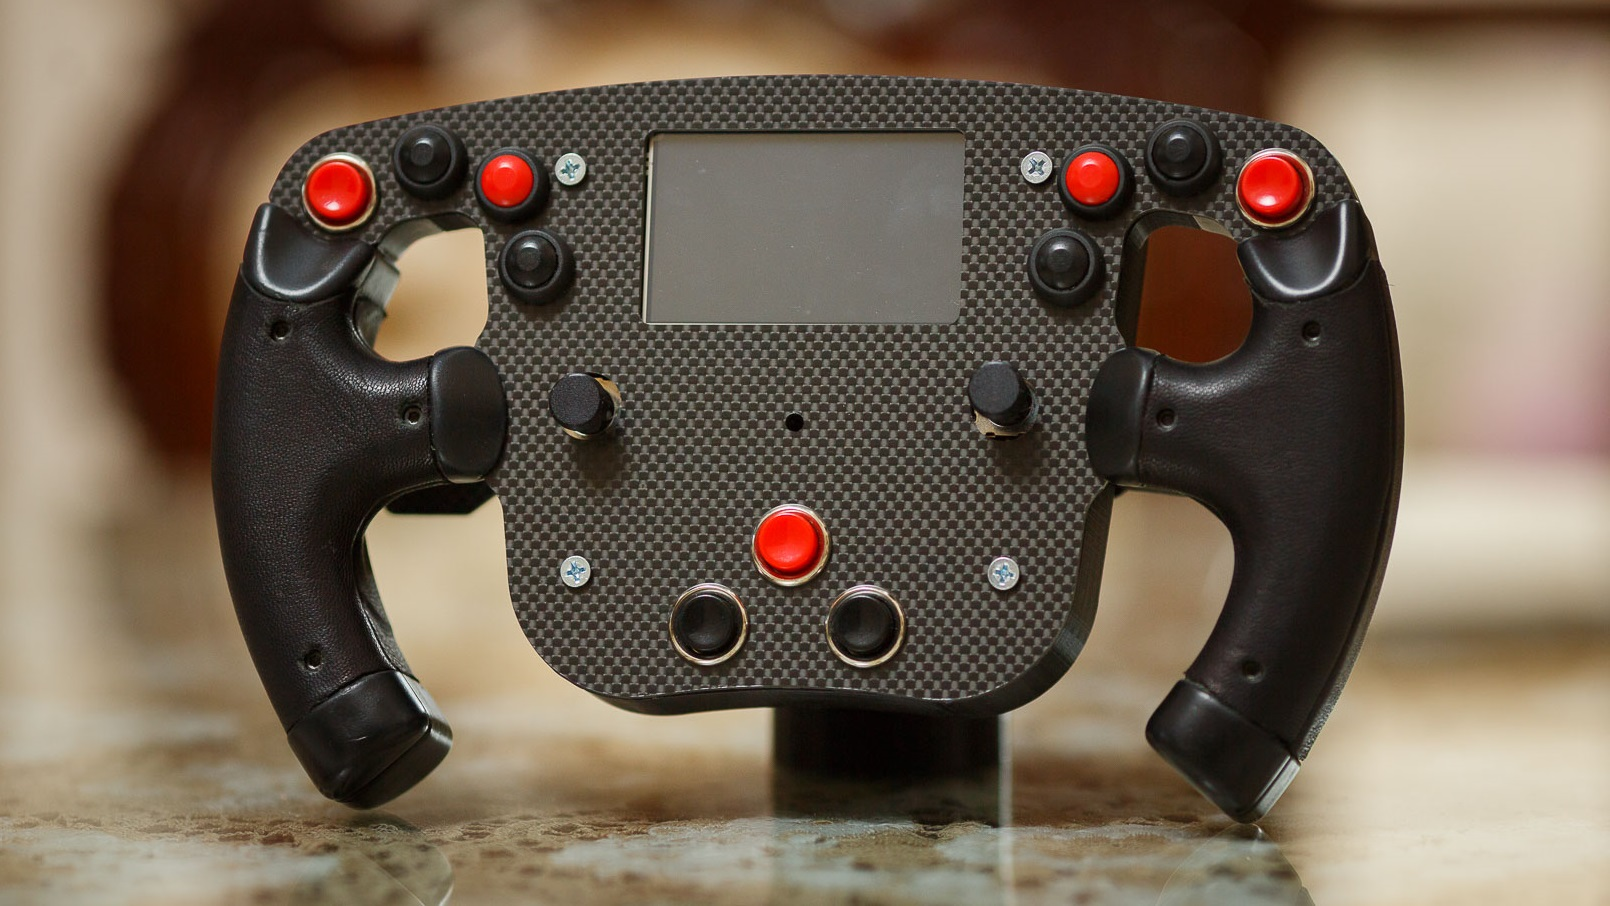 Custom Arduino steering wheel adds F1 functionality to